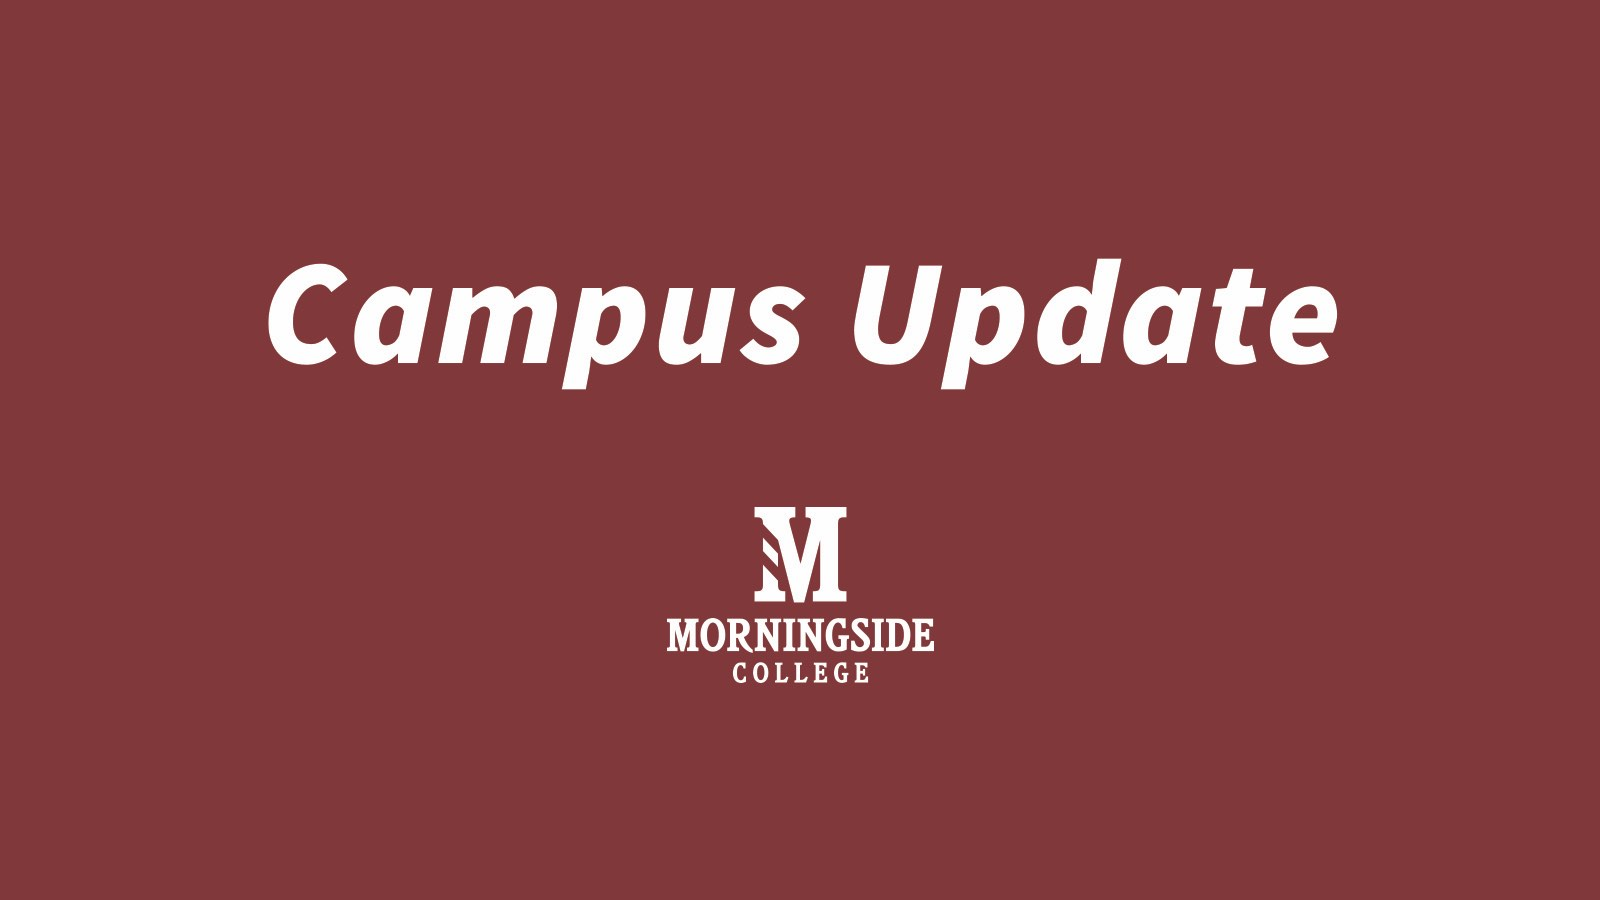 Campus Update graphic